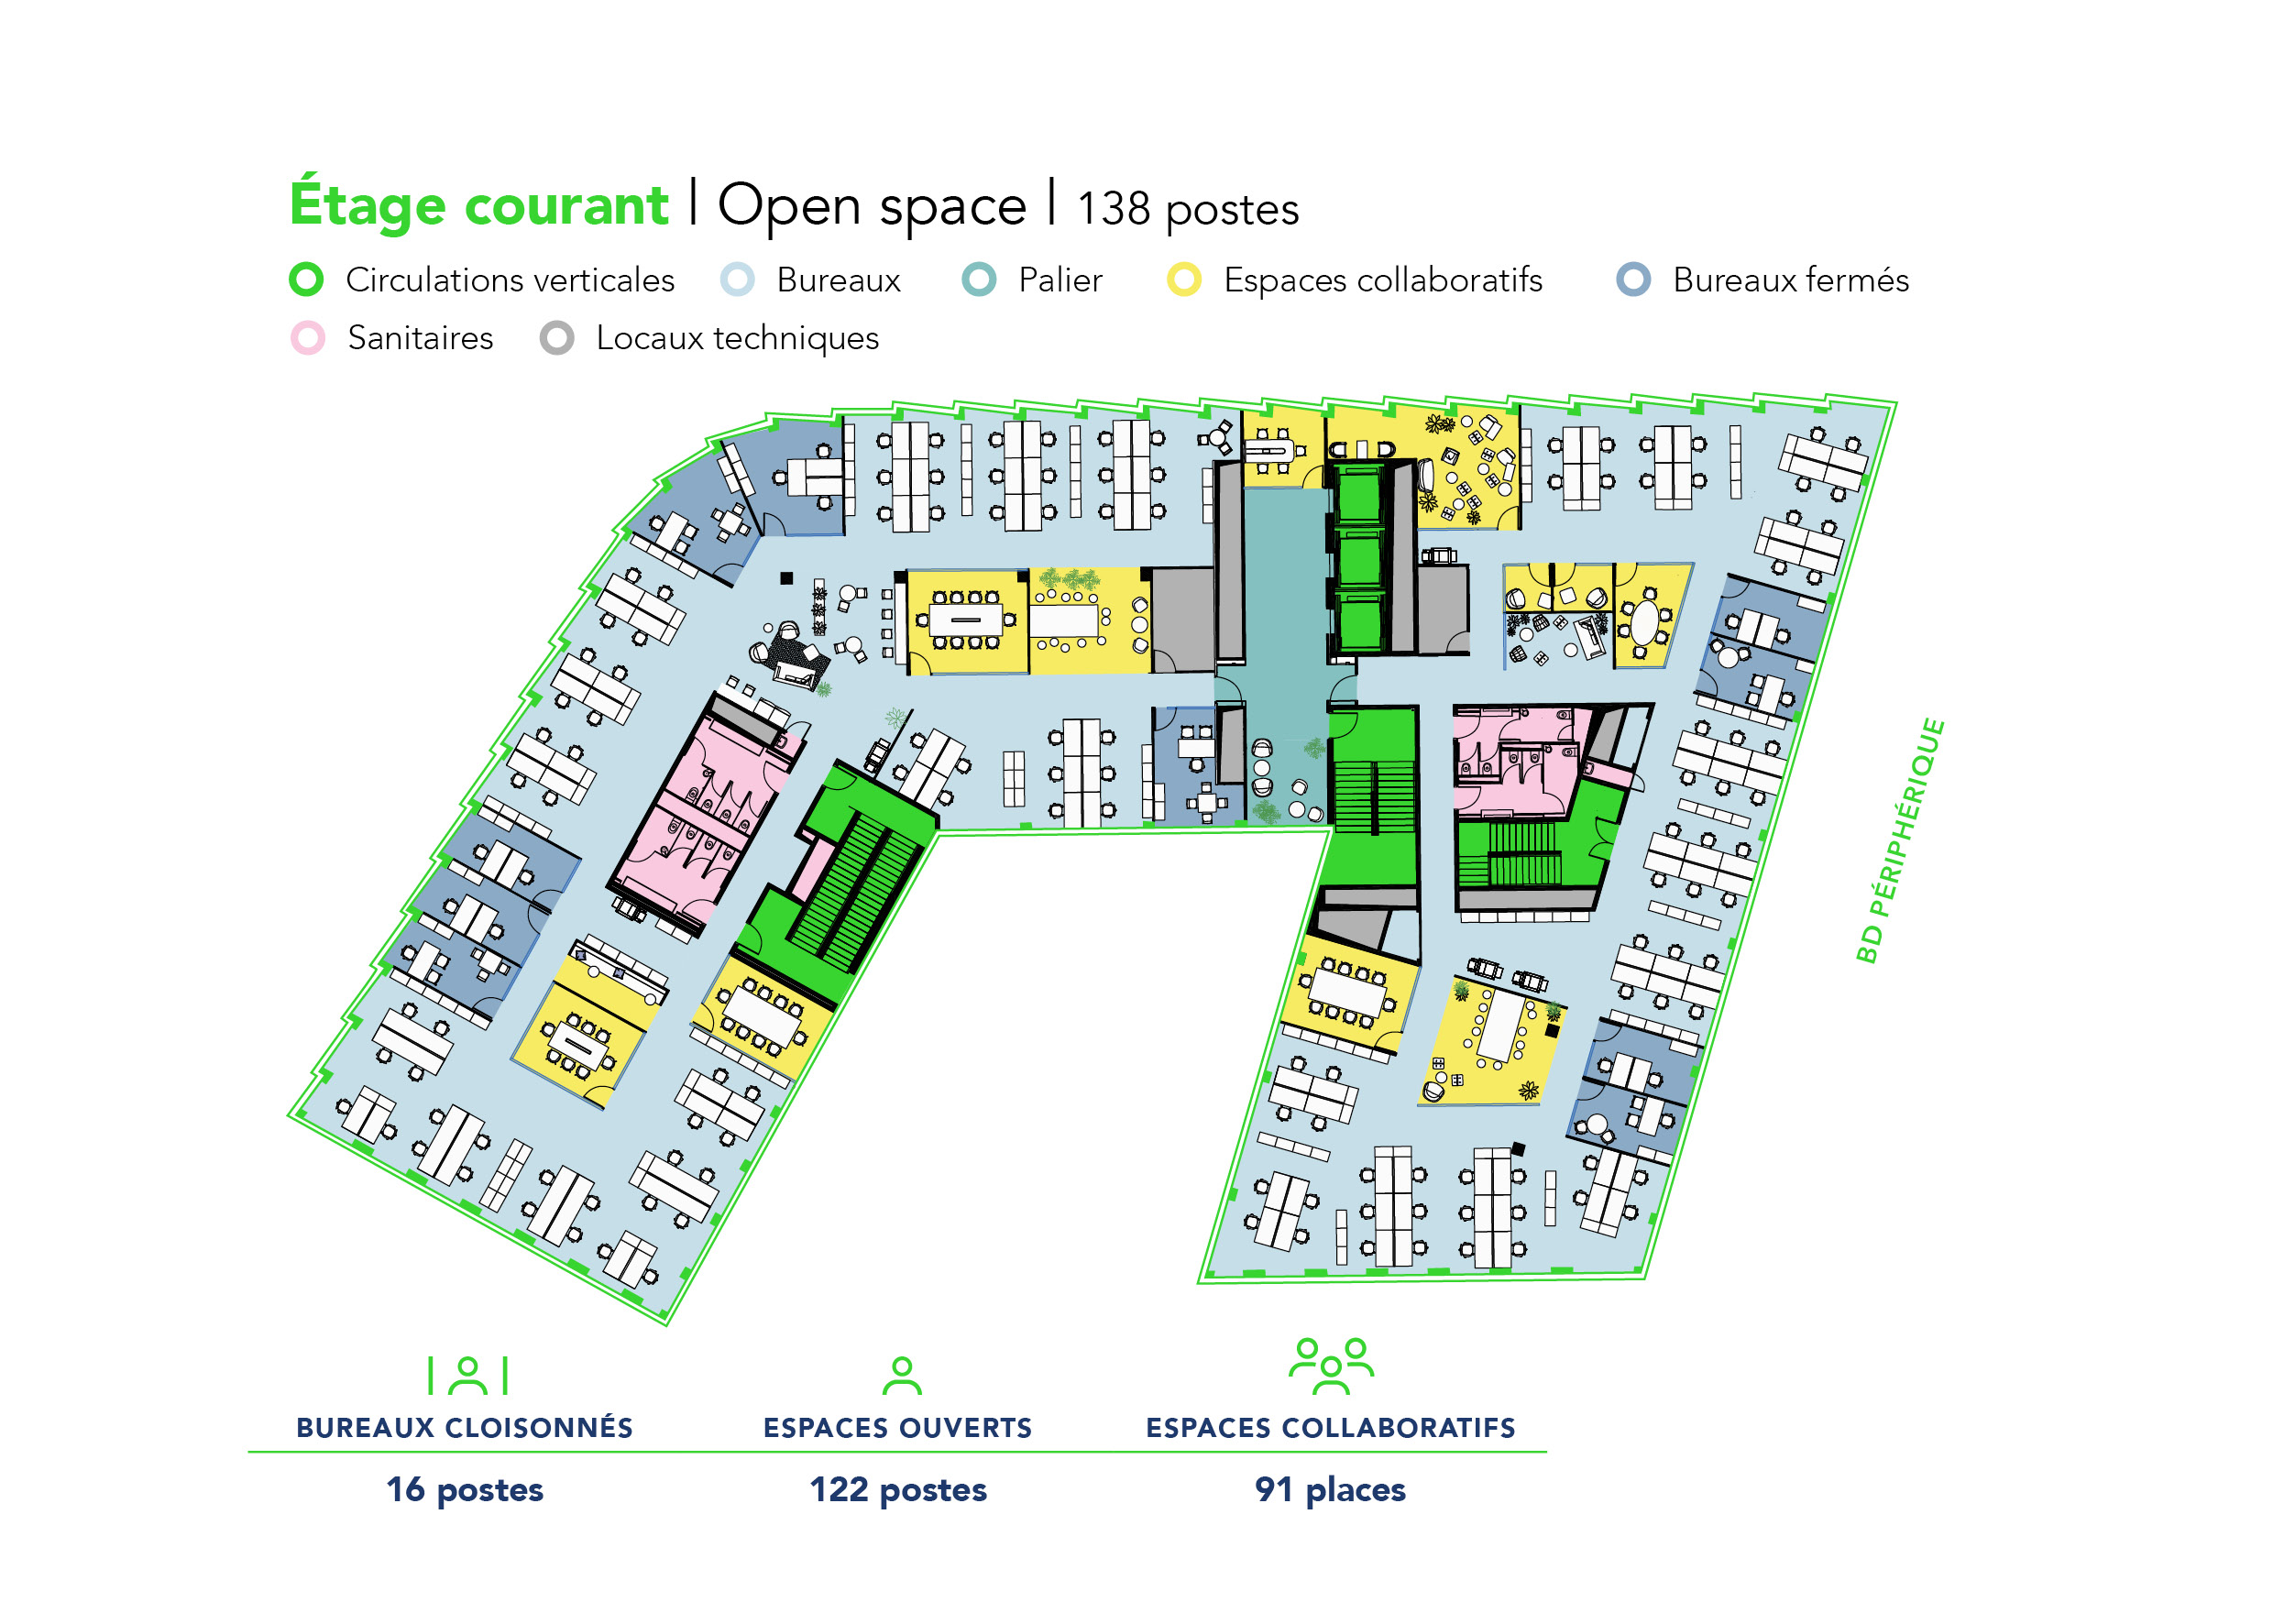 Plan étage courant open-space